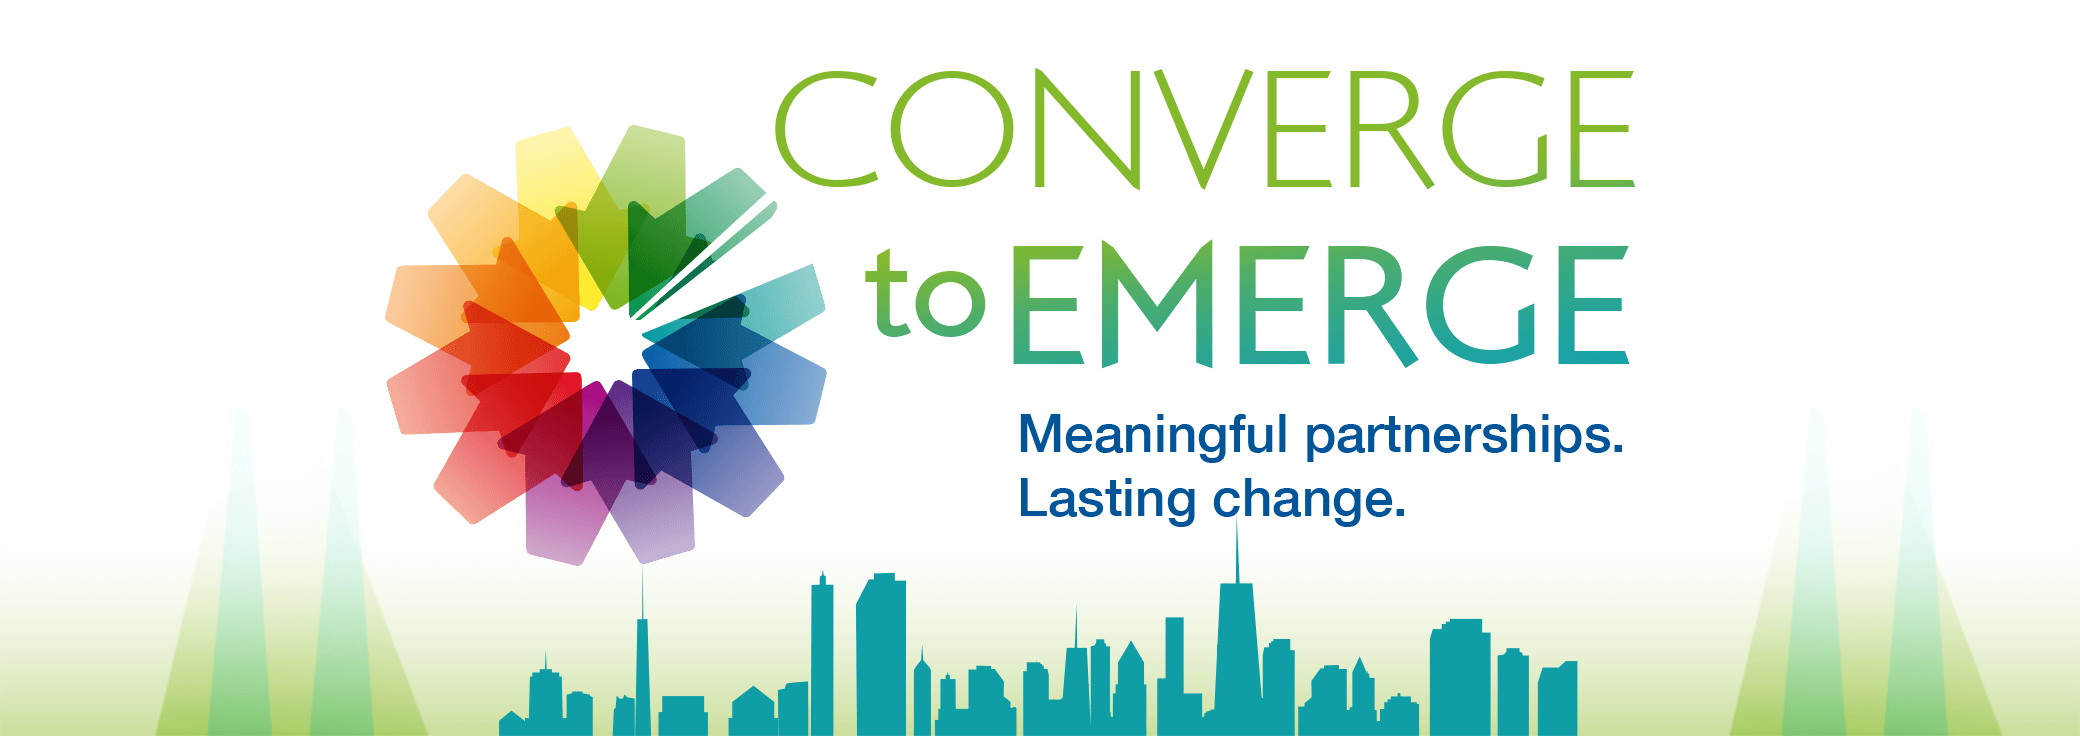 Converge to Emerge: Meaningful partnerships. Lasting change (w/ rainbow graphic)